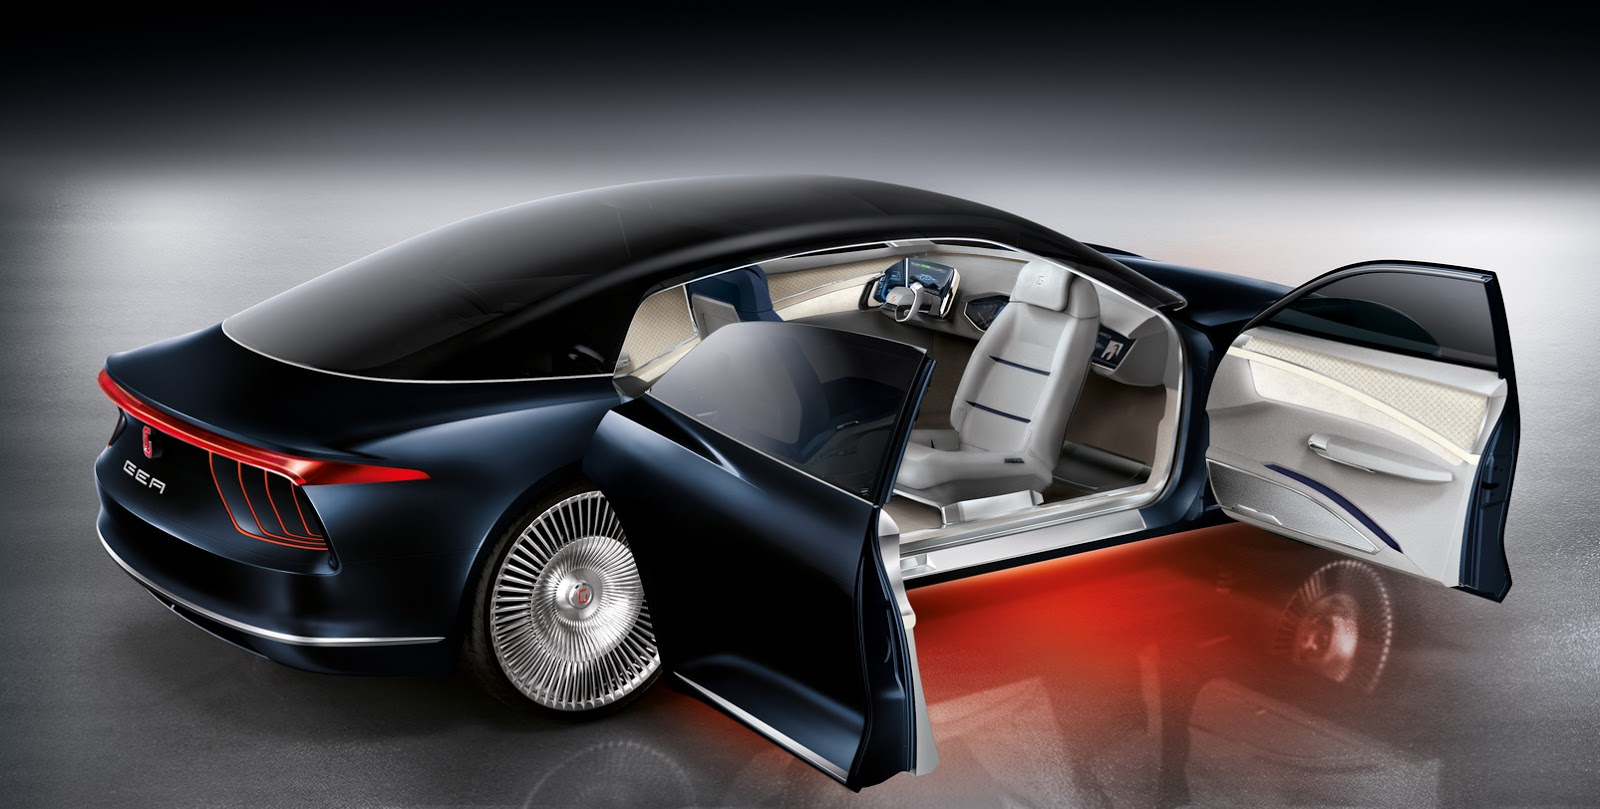 Italdesign Brings Sexiness To Autonomous Cars With Gea Concept